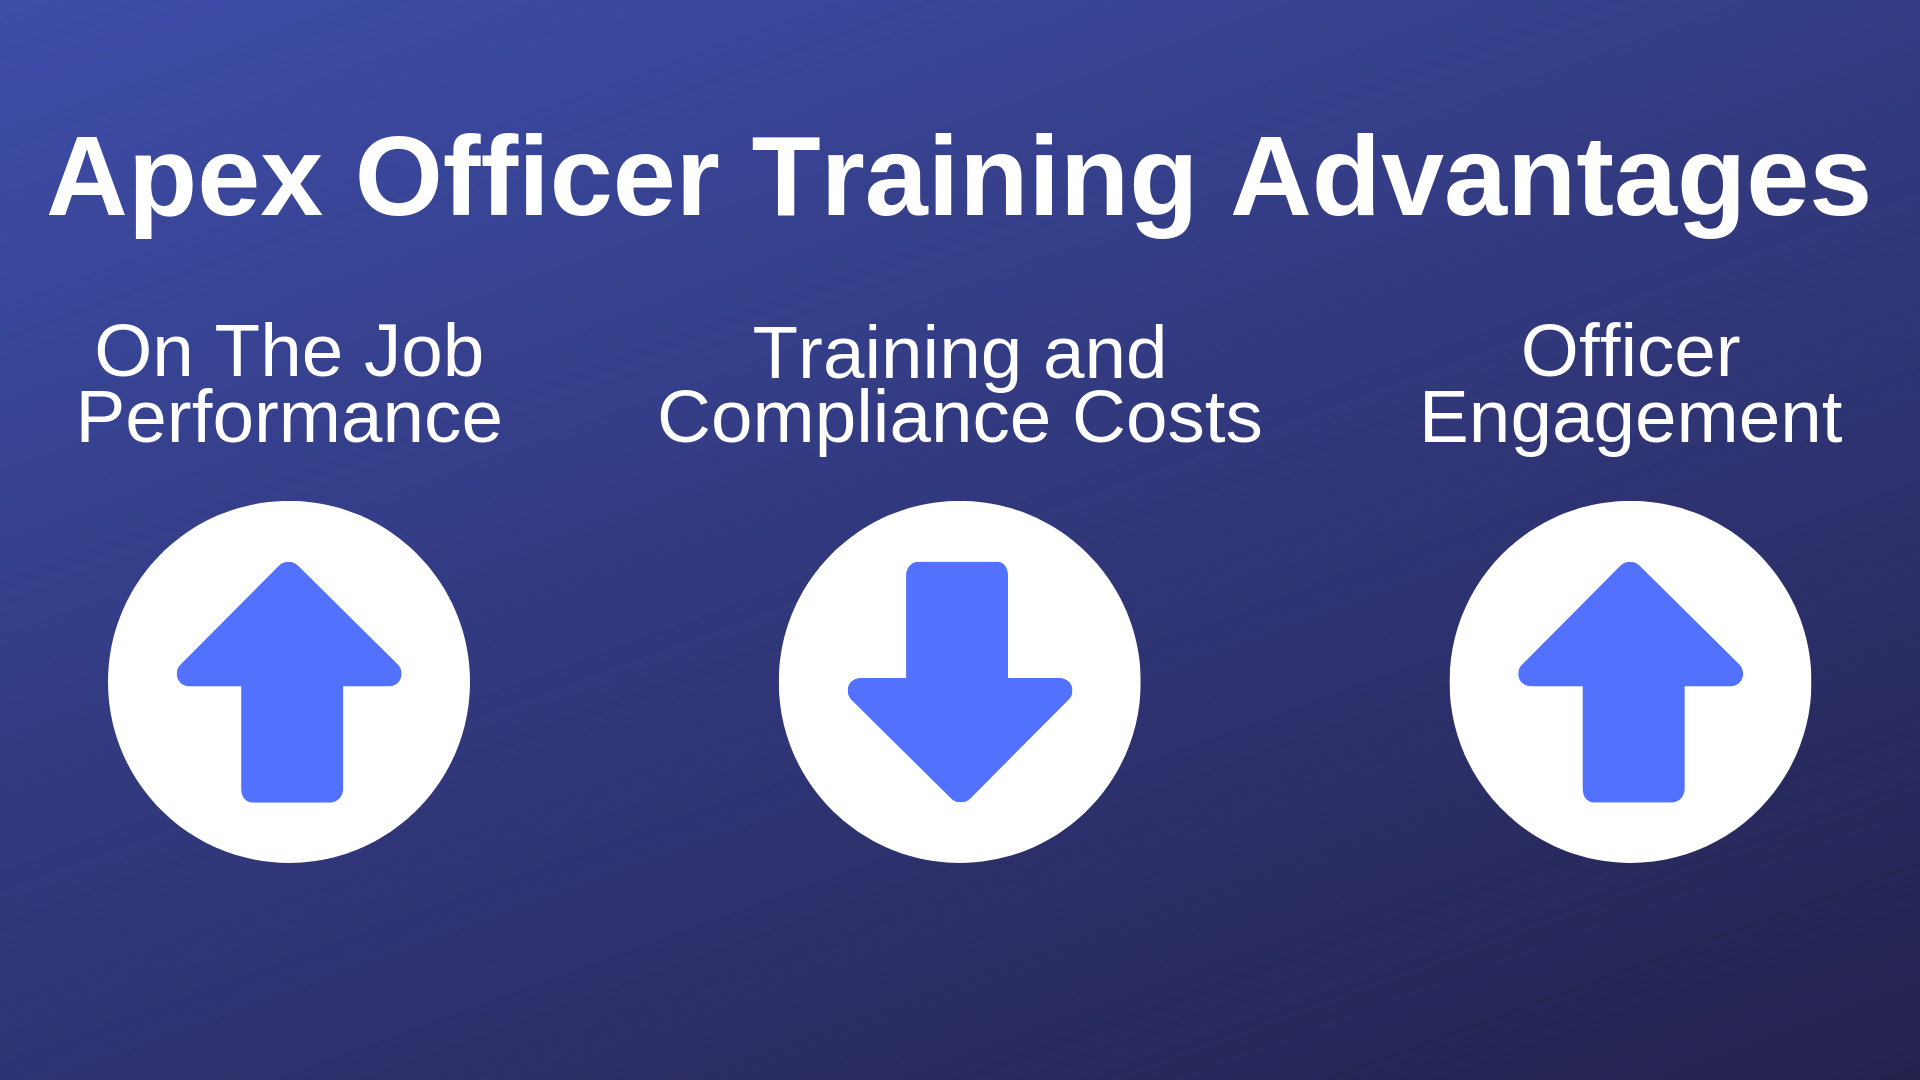 Apex Officer Training Advantages